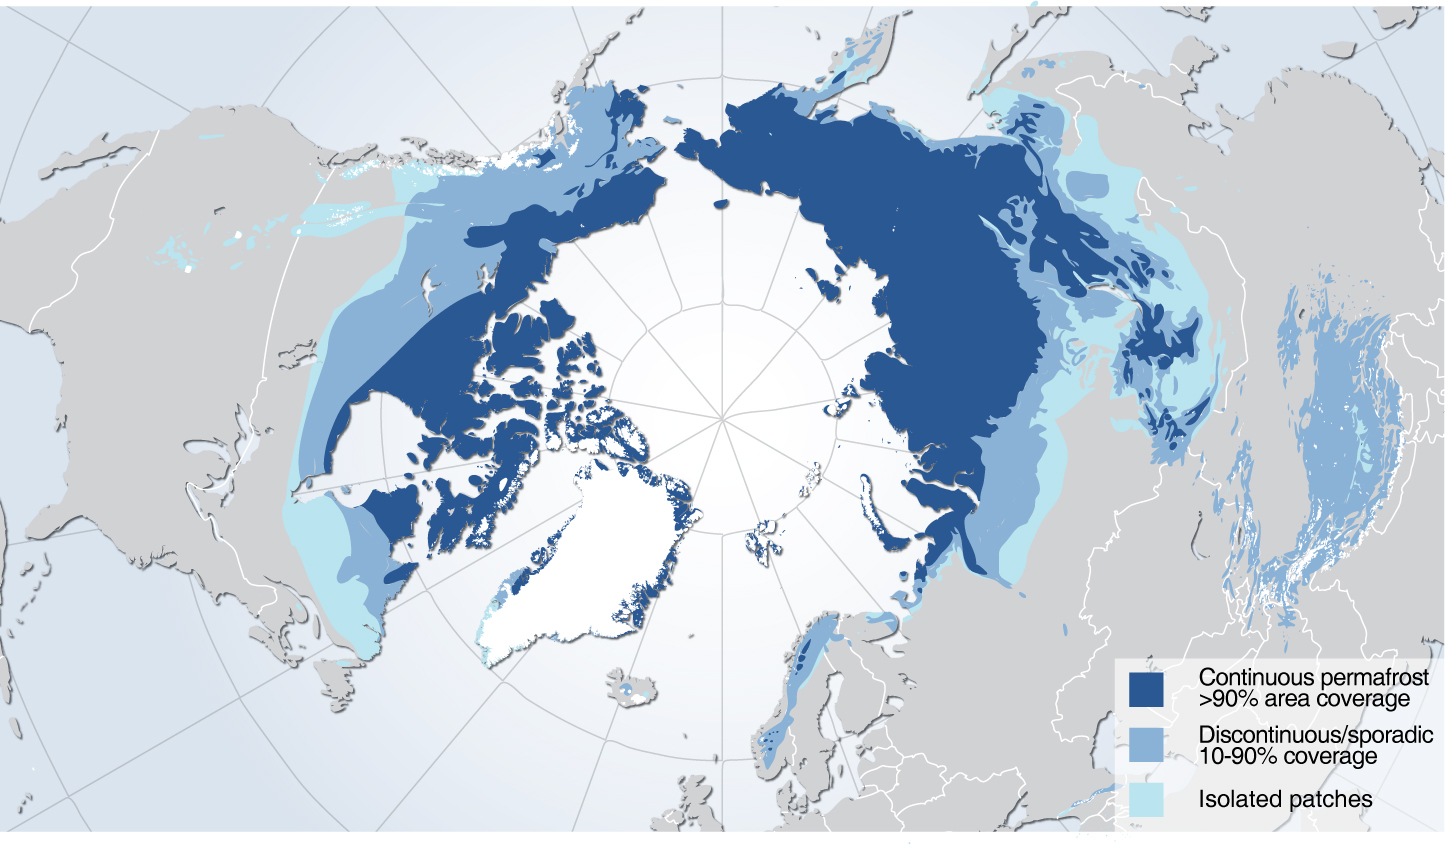 Permafrost Coverage in Northern Hemisphere